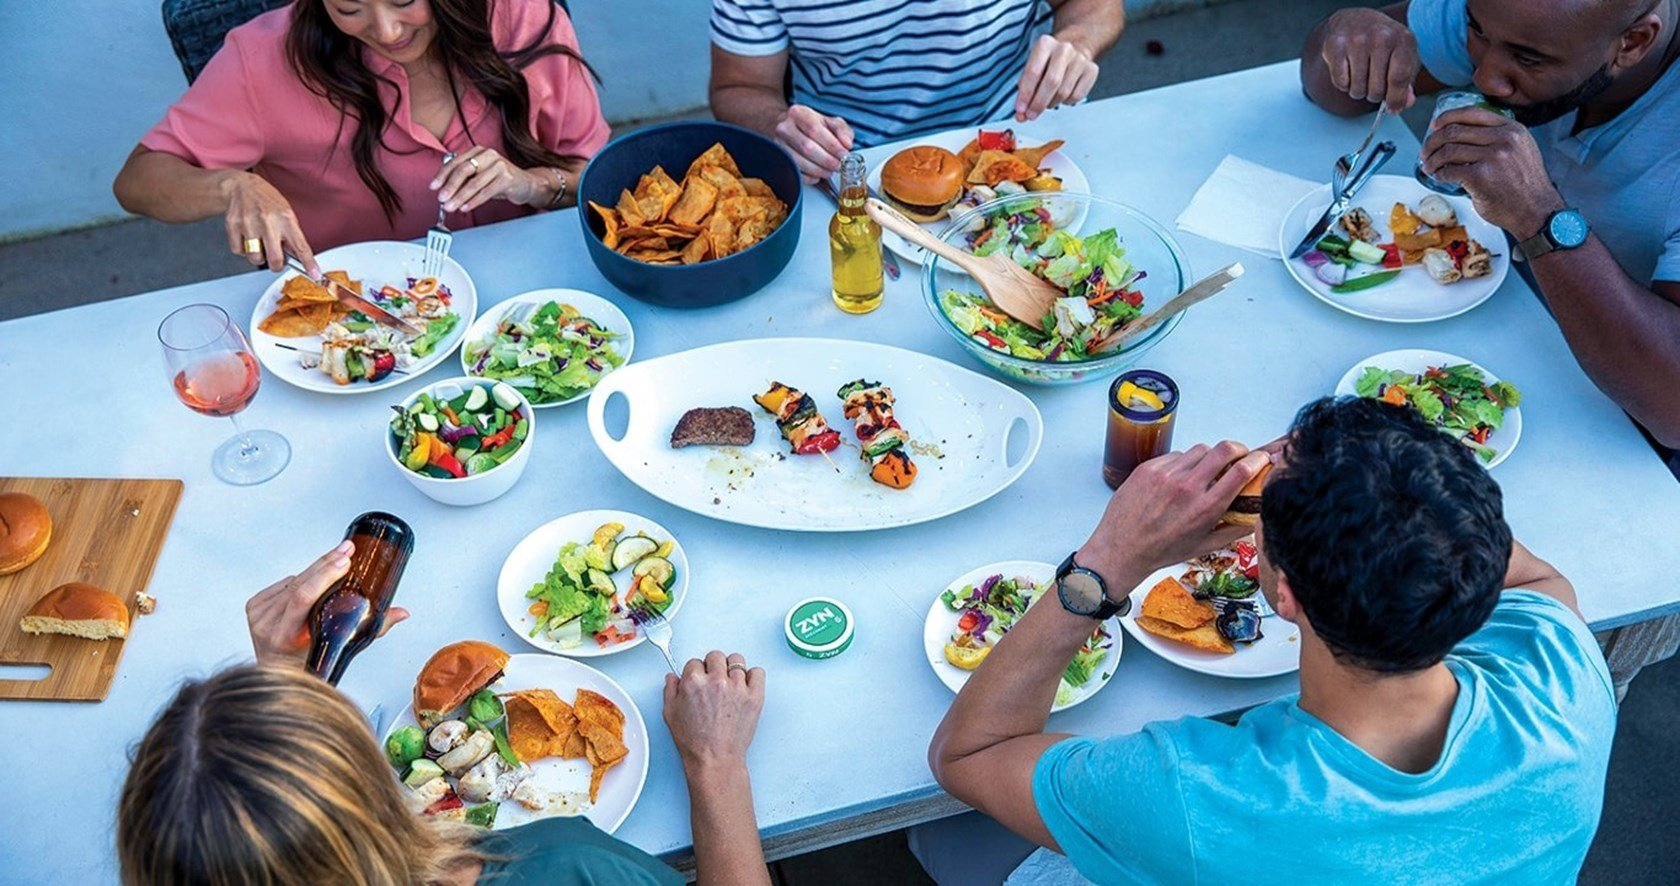 A group of adult friends eating a meal with cans of ZYN Tobacco-Free Nicotine Pouches on the table.